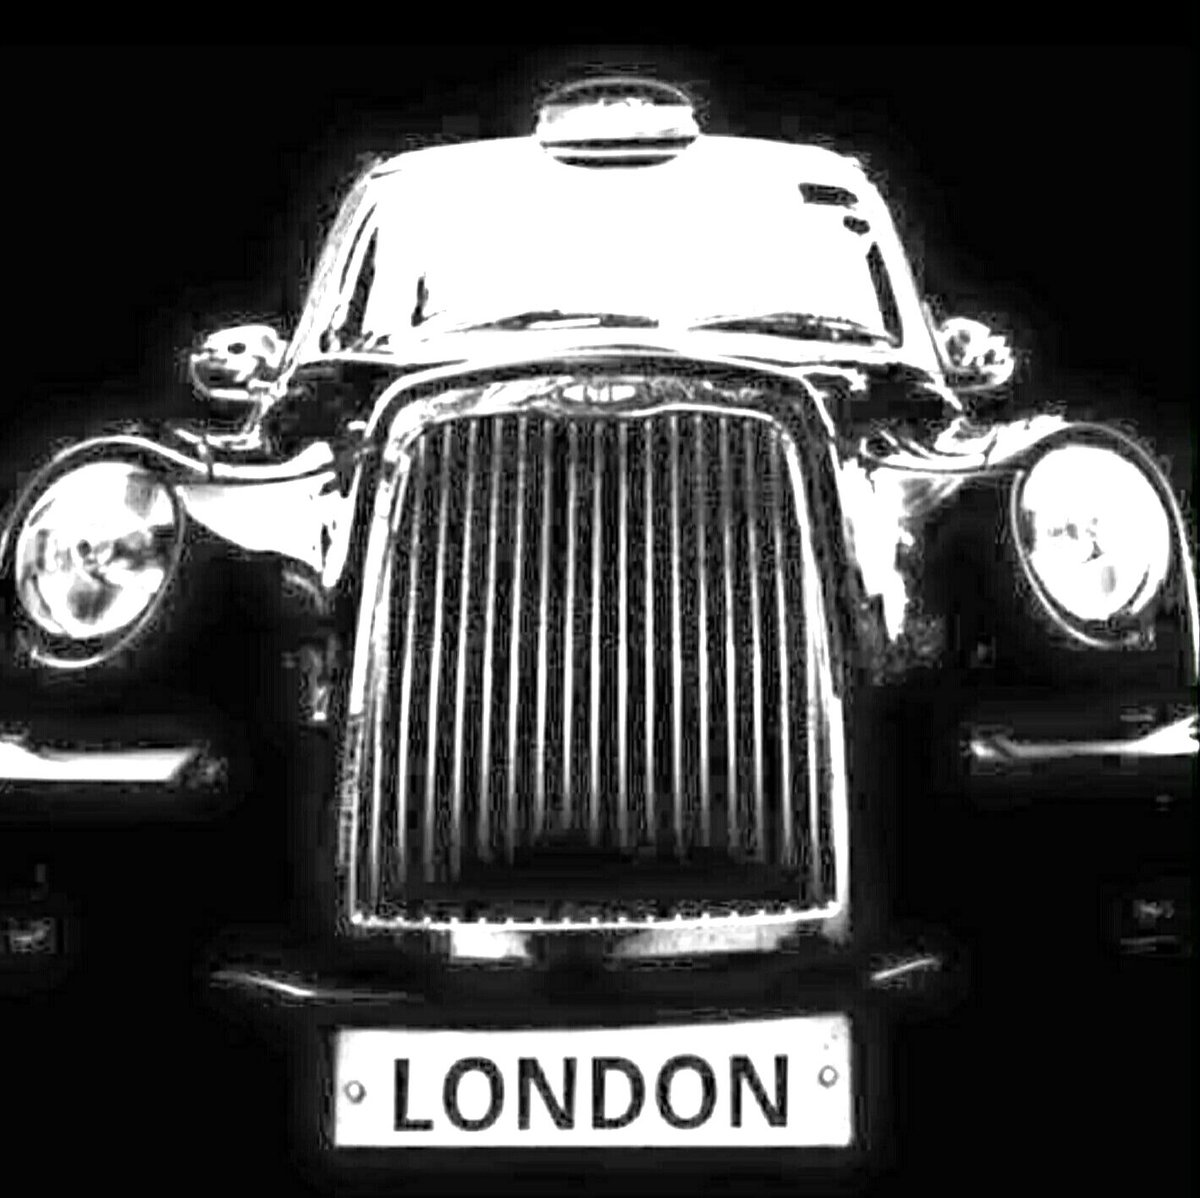 Have an Amazing ☞ #LFAurora #LFLead  #Blackcab at your Service ☛ .@LF4HE   https:// youtu.be/_vSbc26qFLE  &nbsp;  <br>http://pic.twitter.com/QPynaCUb65